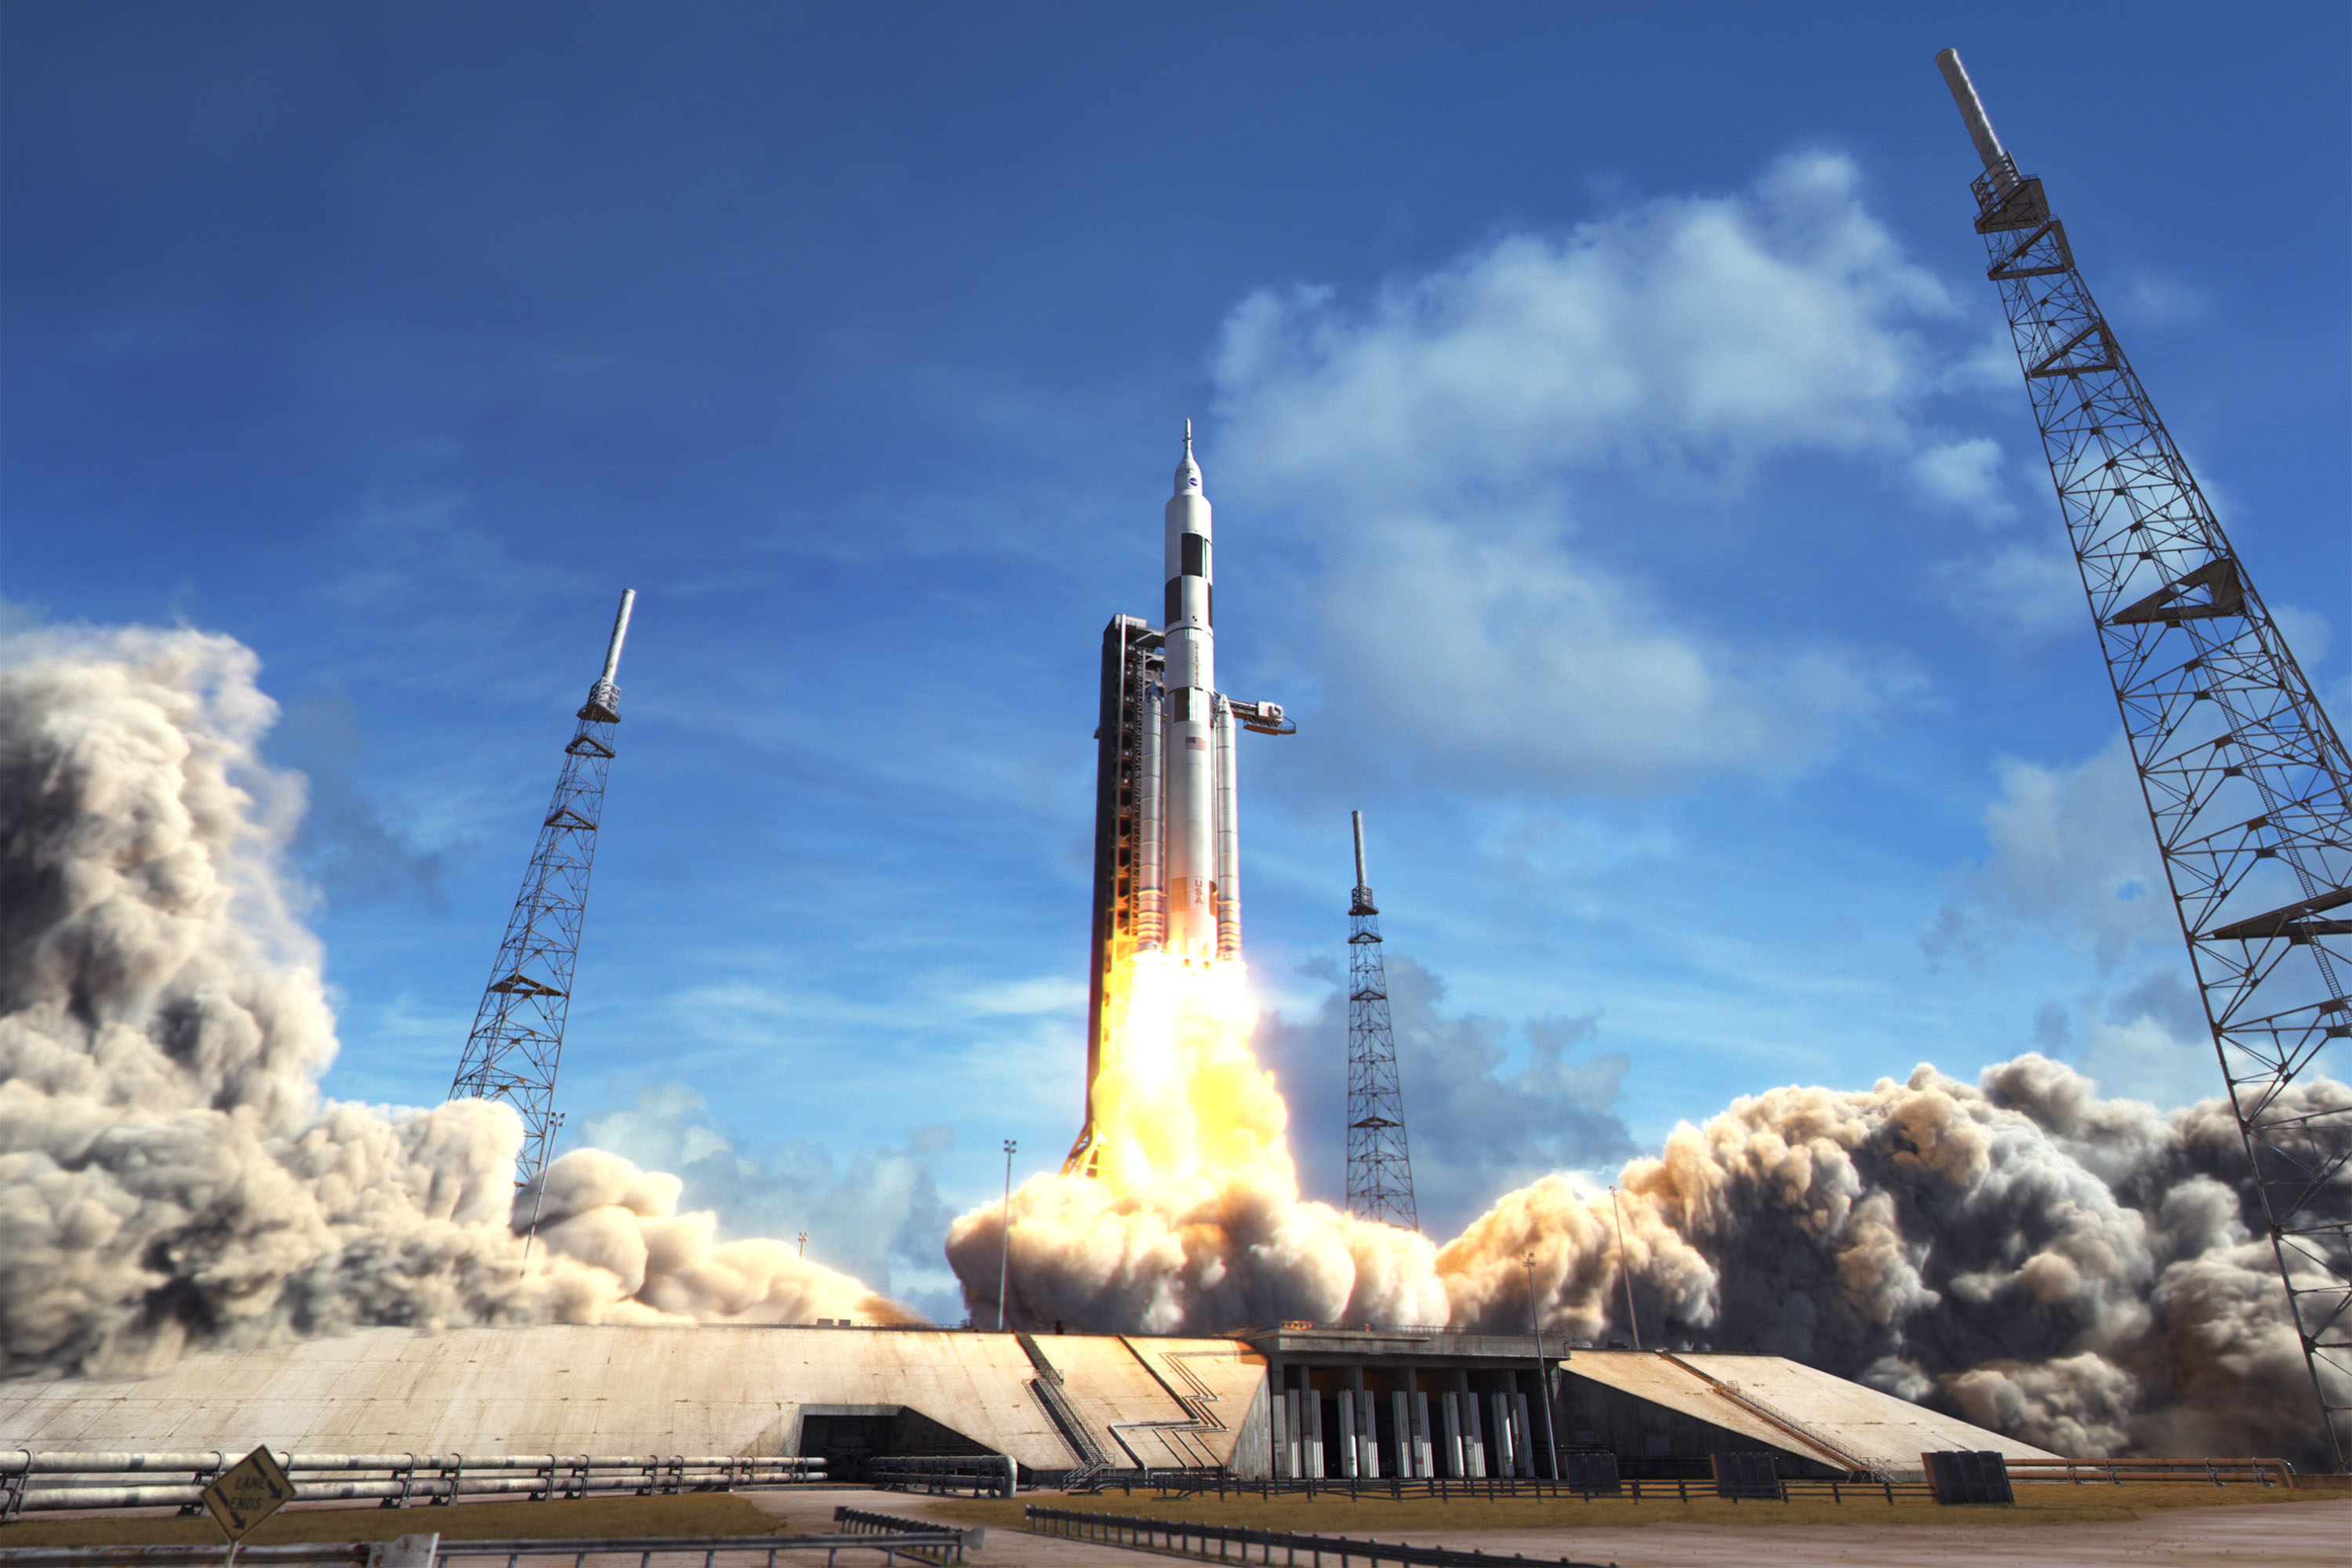 Where to Watch Space Rocket Launches